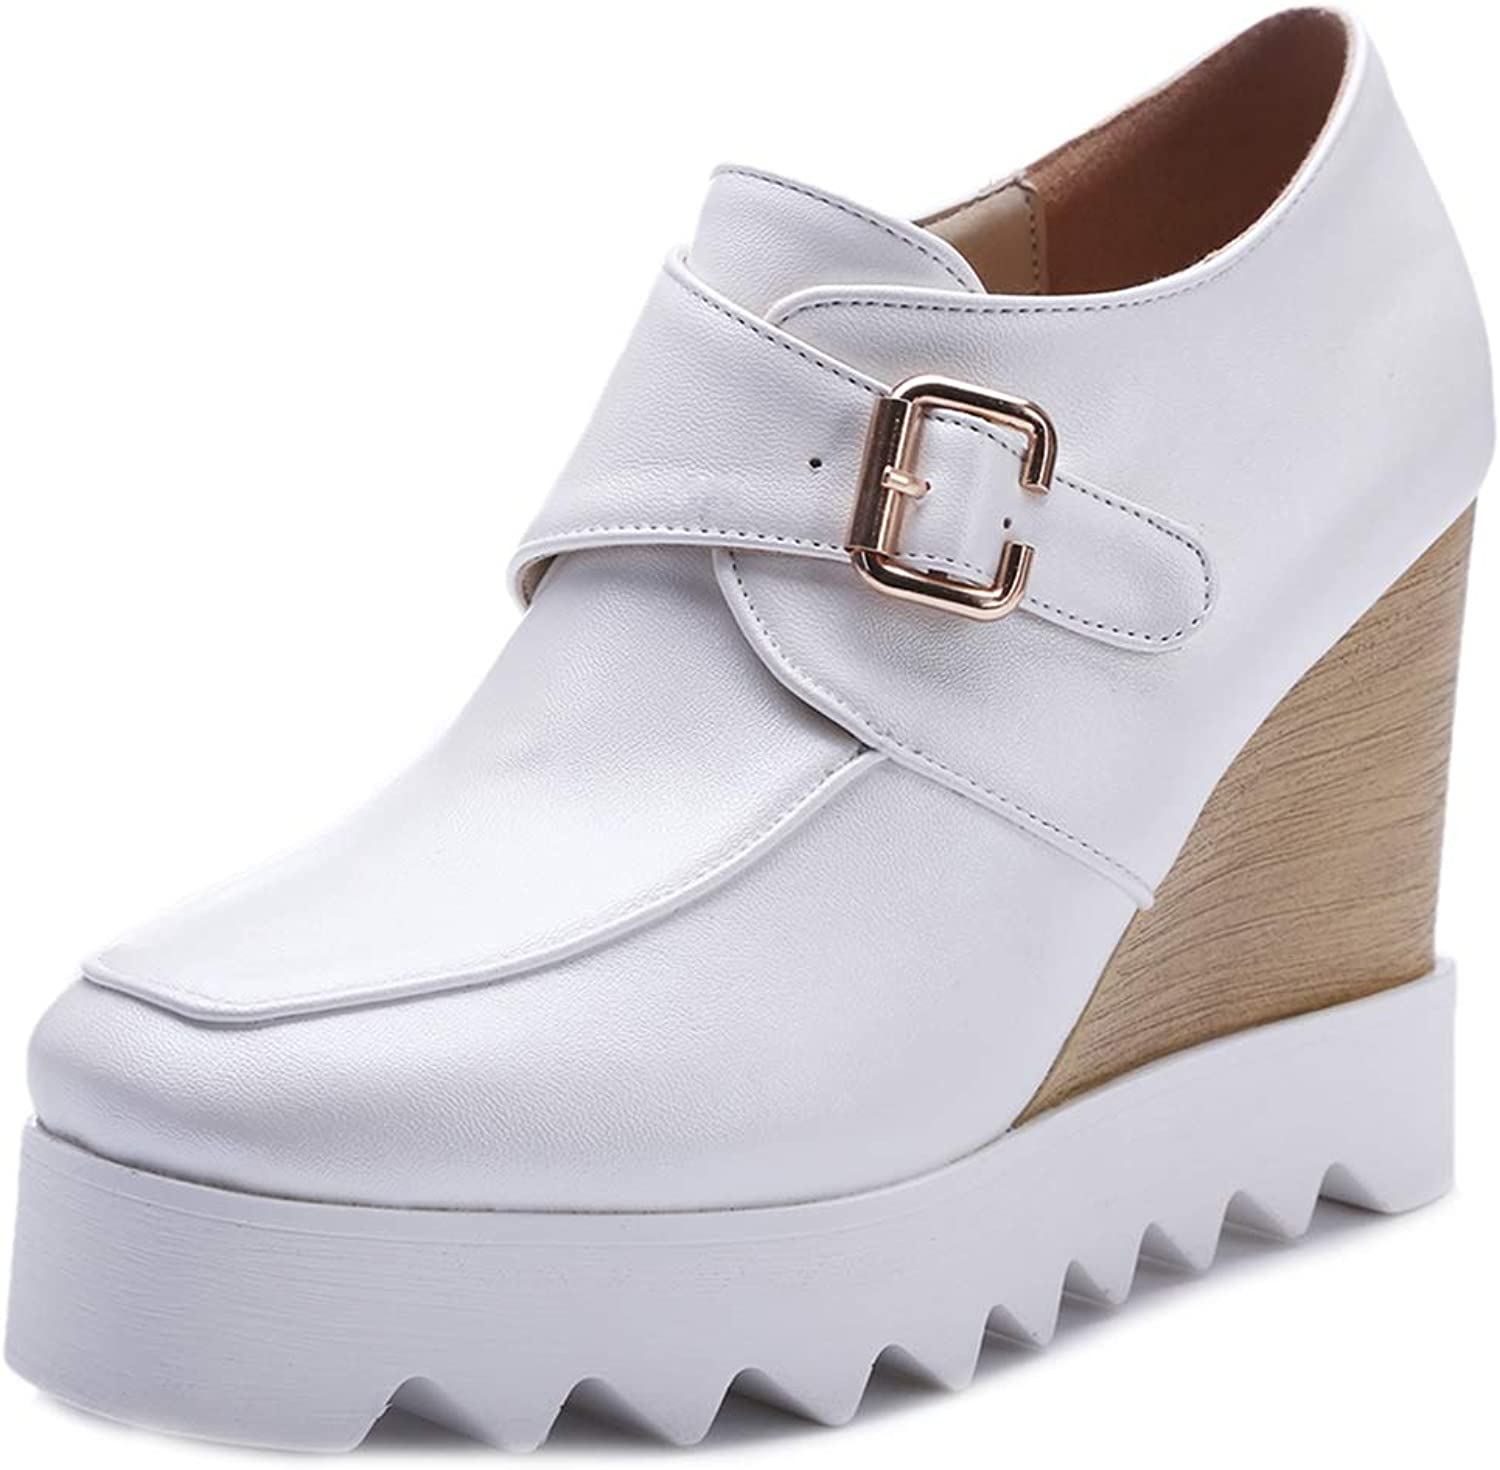 GIY Platform Wedge Oxfords shoes for Women with Buckle Wingtip Square Toe Chunky High Heel Casual Loafers